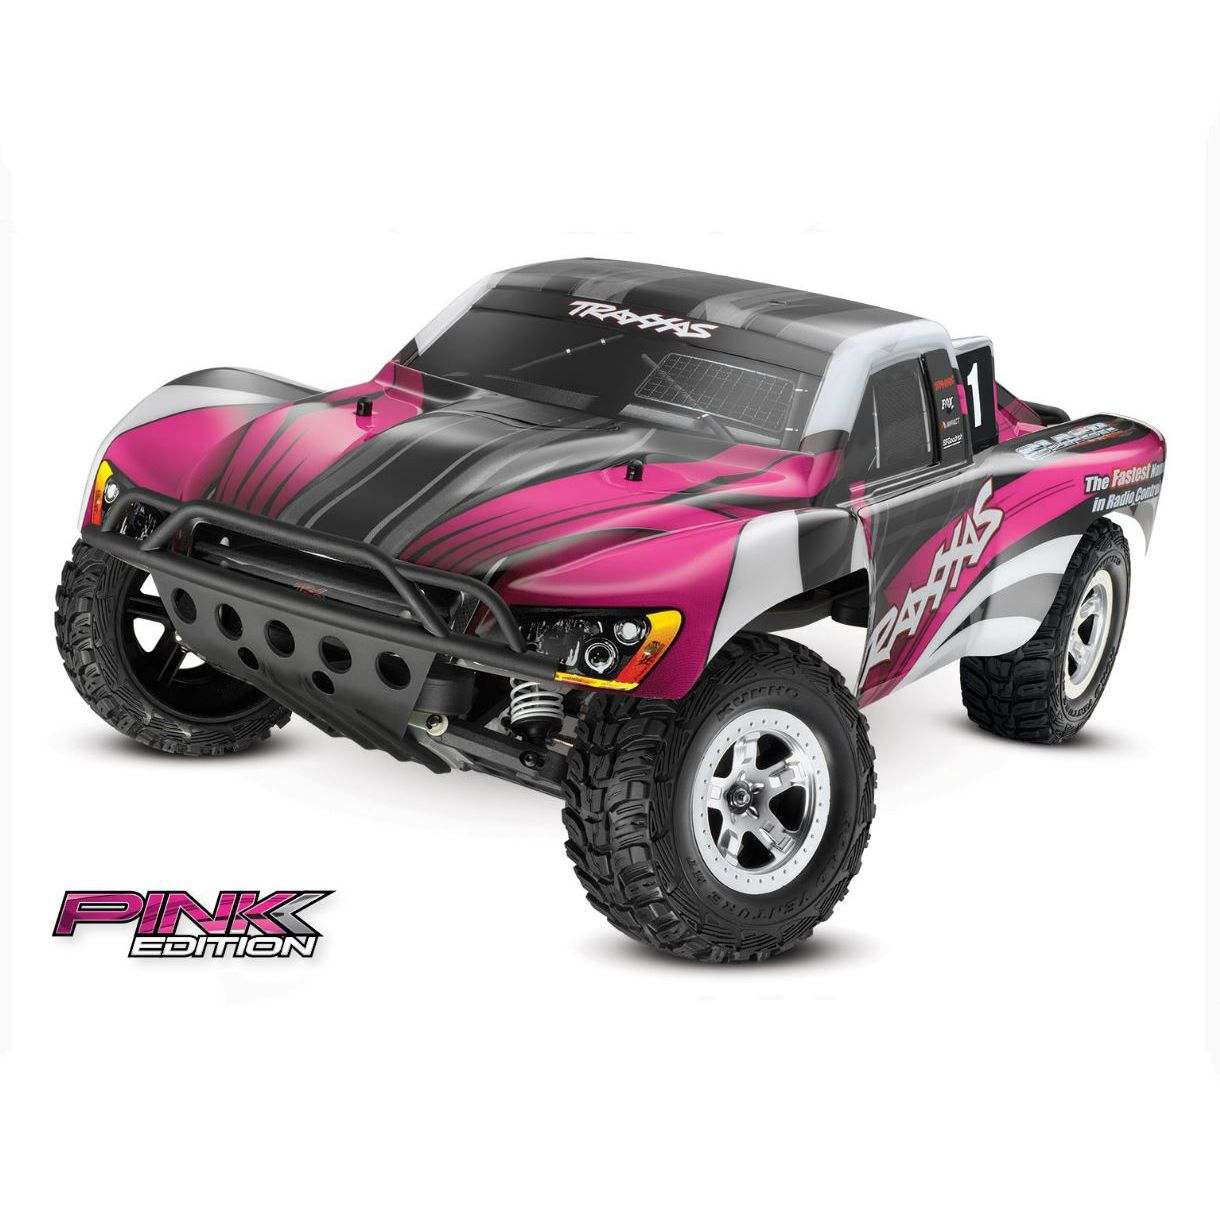 hight resolution of image for 1 10 slash 2wd sct brushed rtr pink edition from horizonhobby